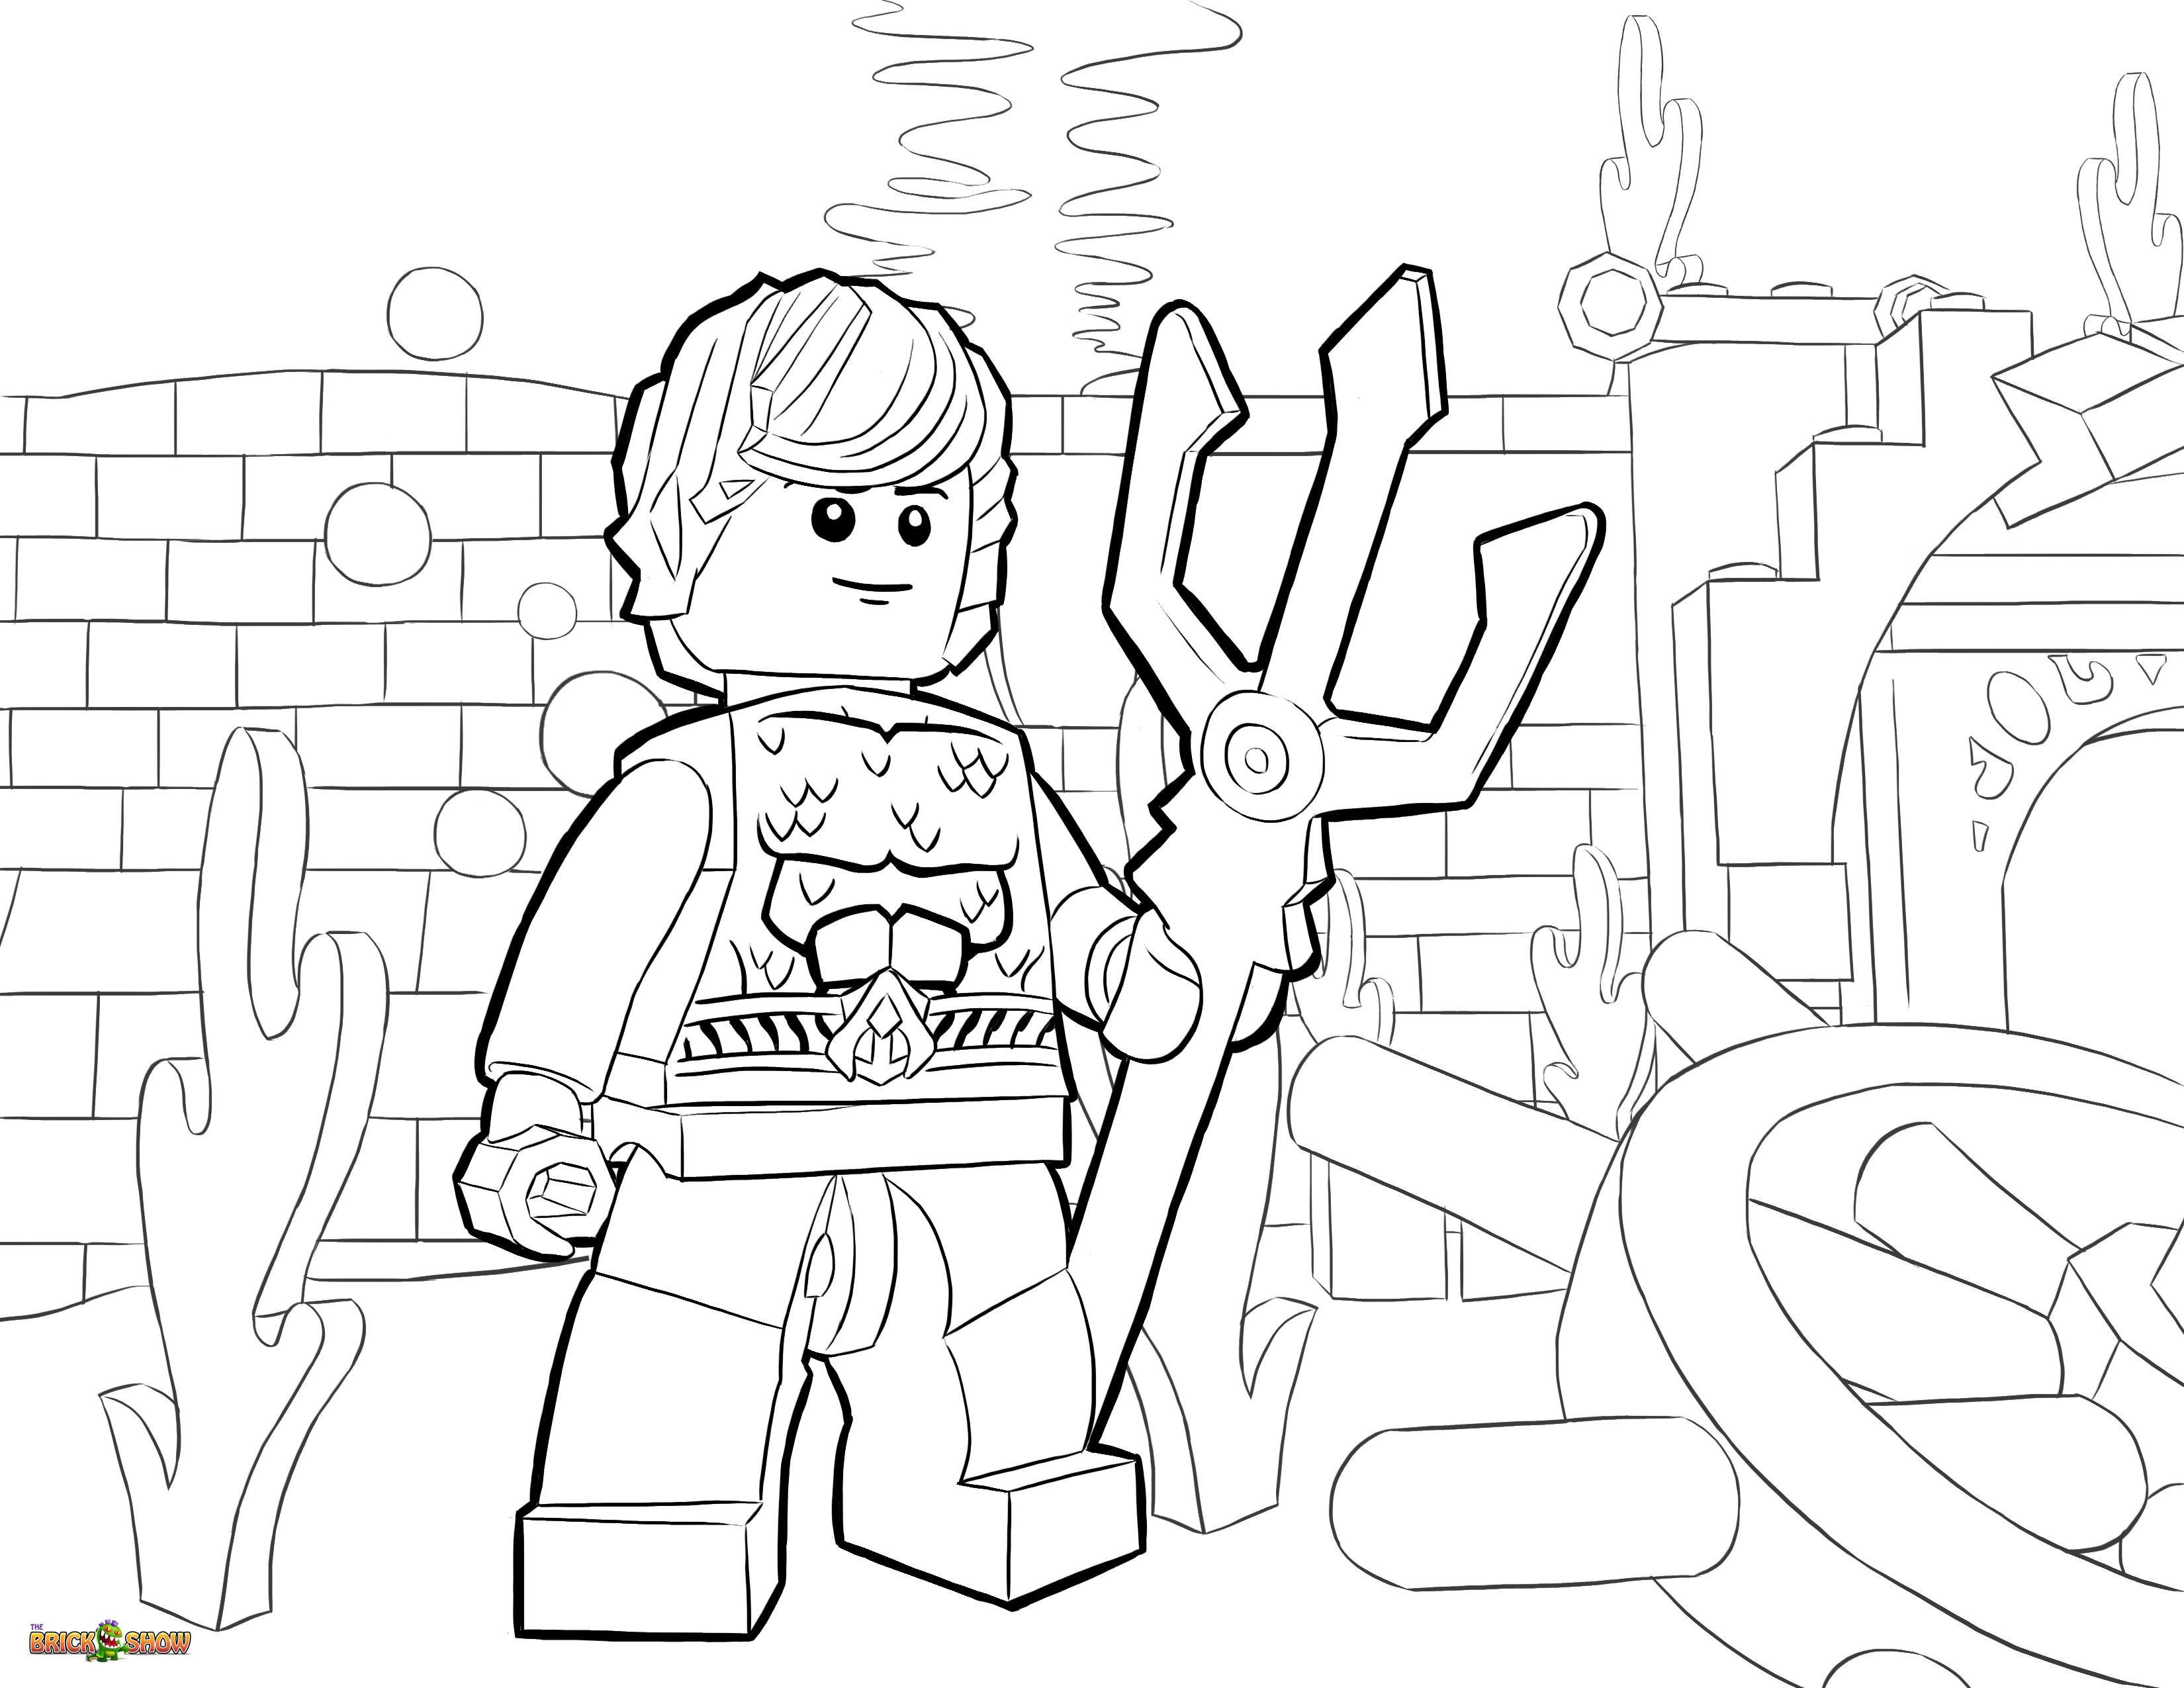 3300x2550 Lego Bridge Coloring Page For Kids Lovely Coloring Pages For Boys